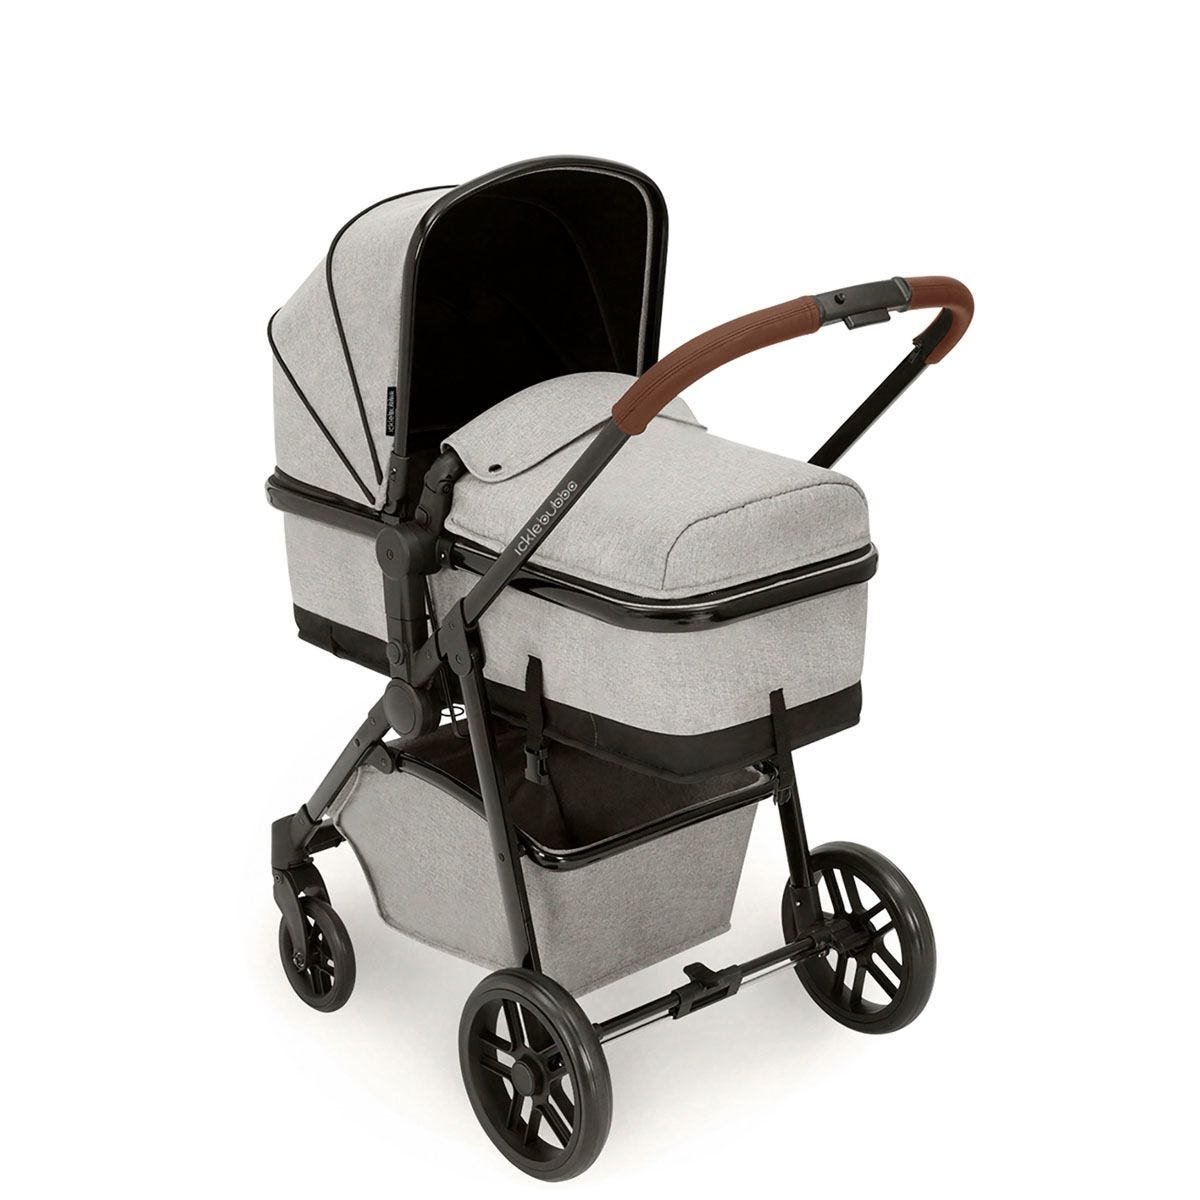 Ickle Bubba Moon 2 in 1 Pushchair - Silver Grey on Black with Tan Handles